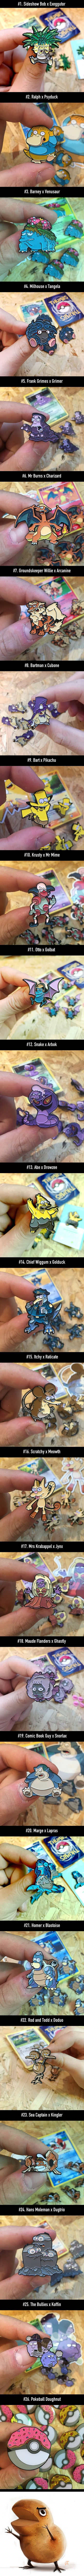 This Artist's Simpsons/Pokemon Mashup Pins Are Frickin Great http://ibeebz.com